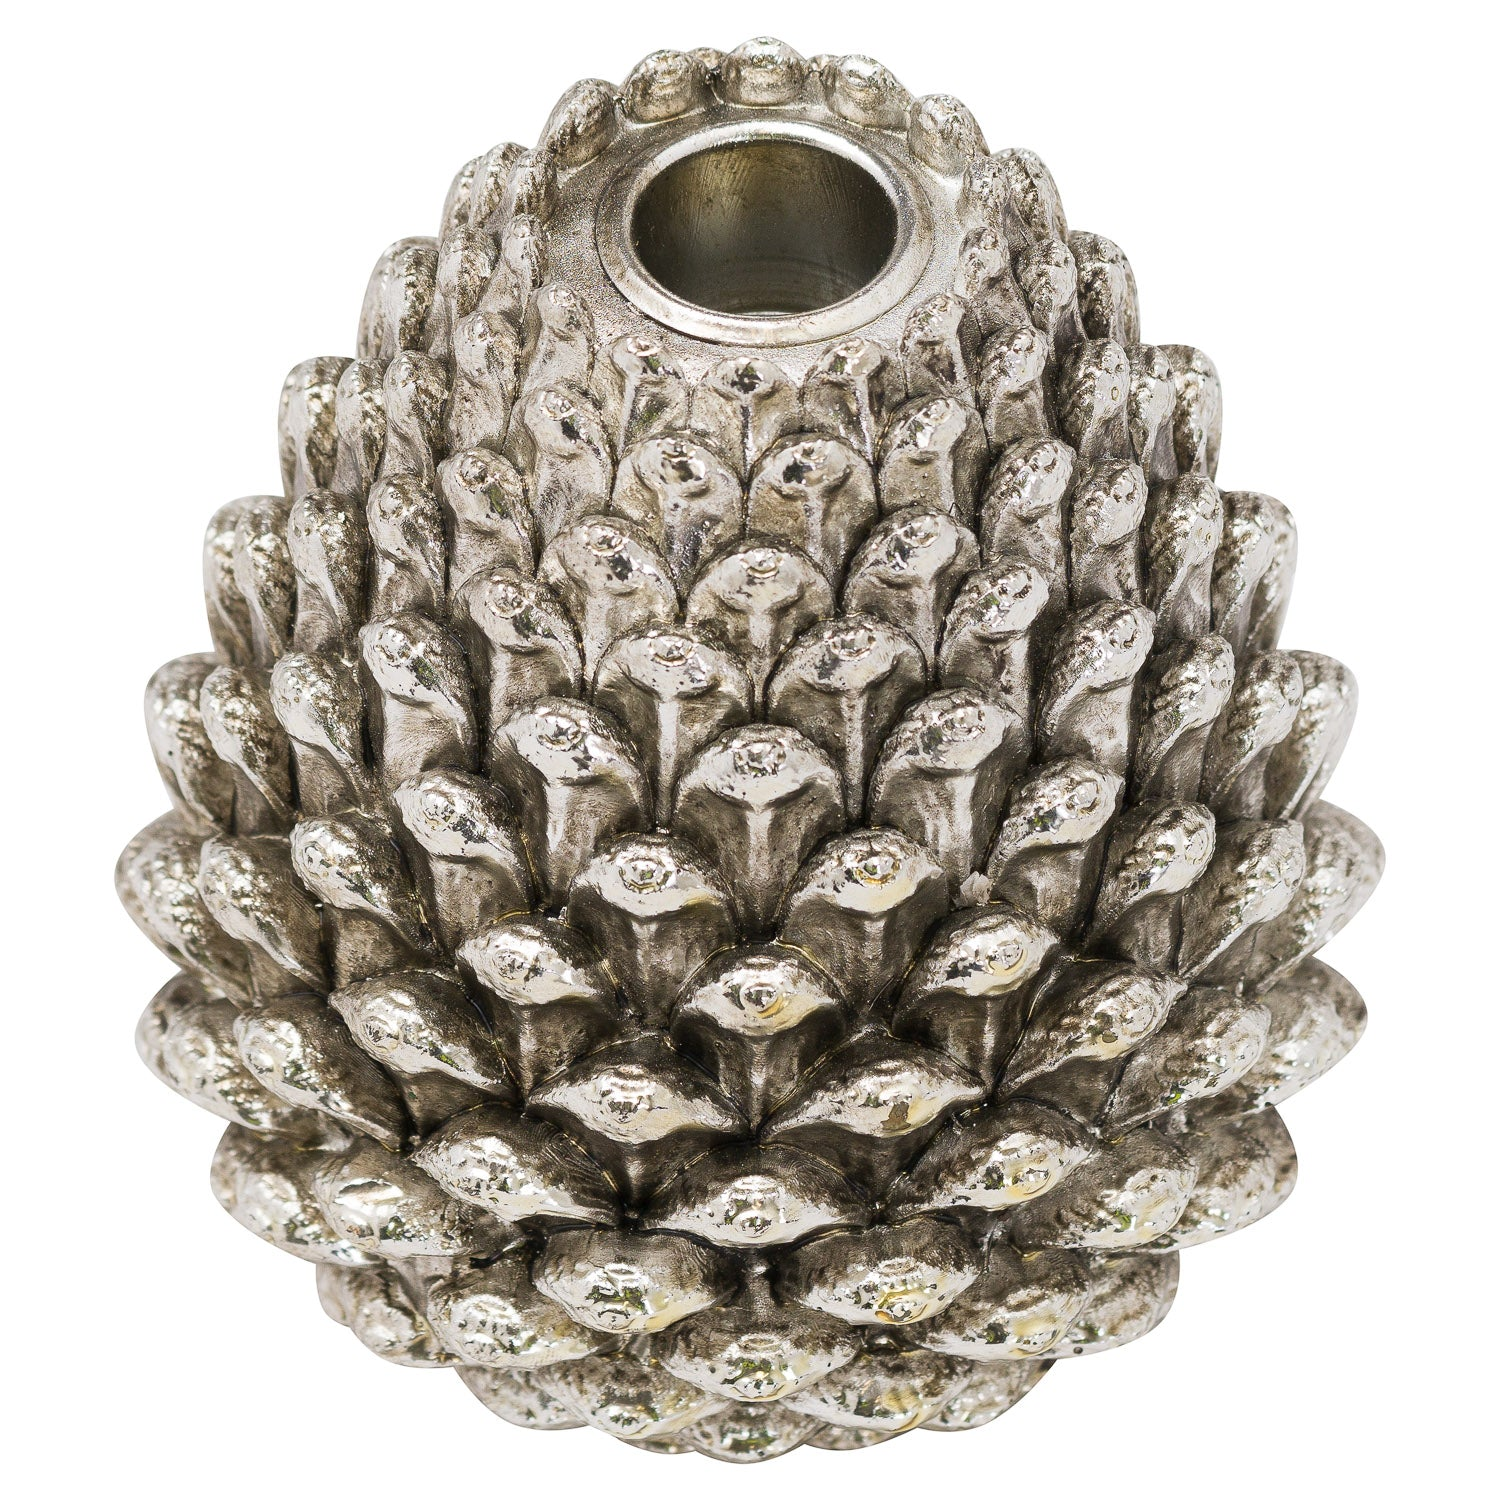 Large Silver Pinecone Candl Holder